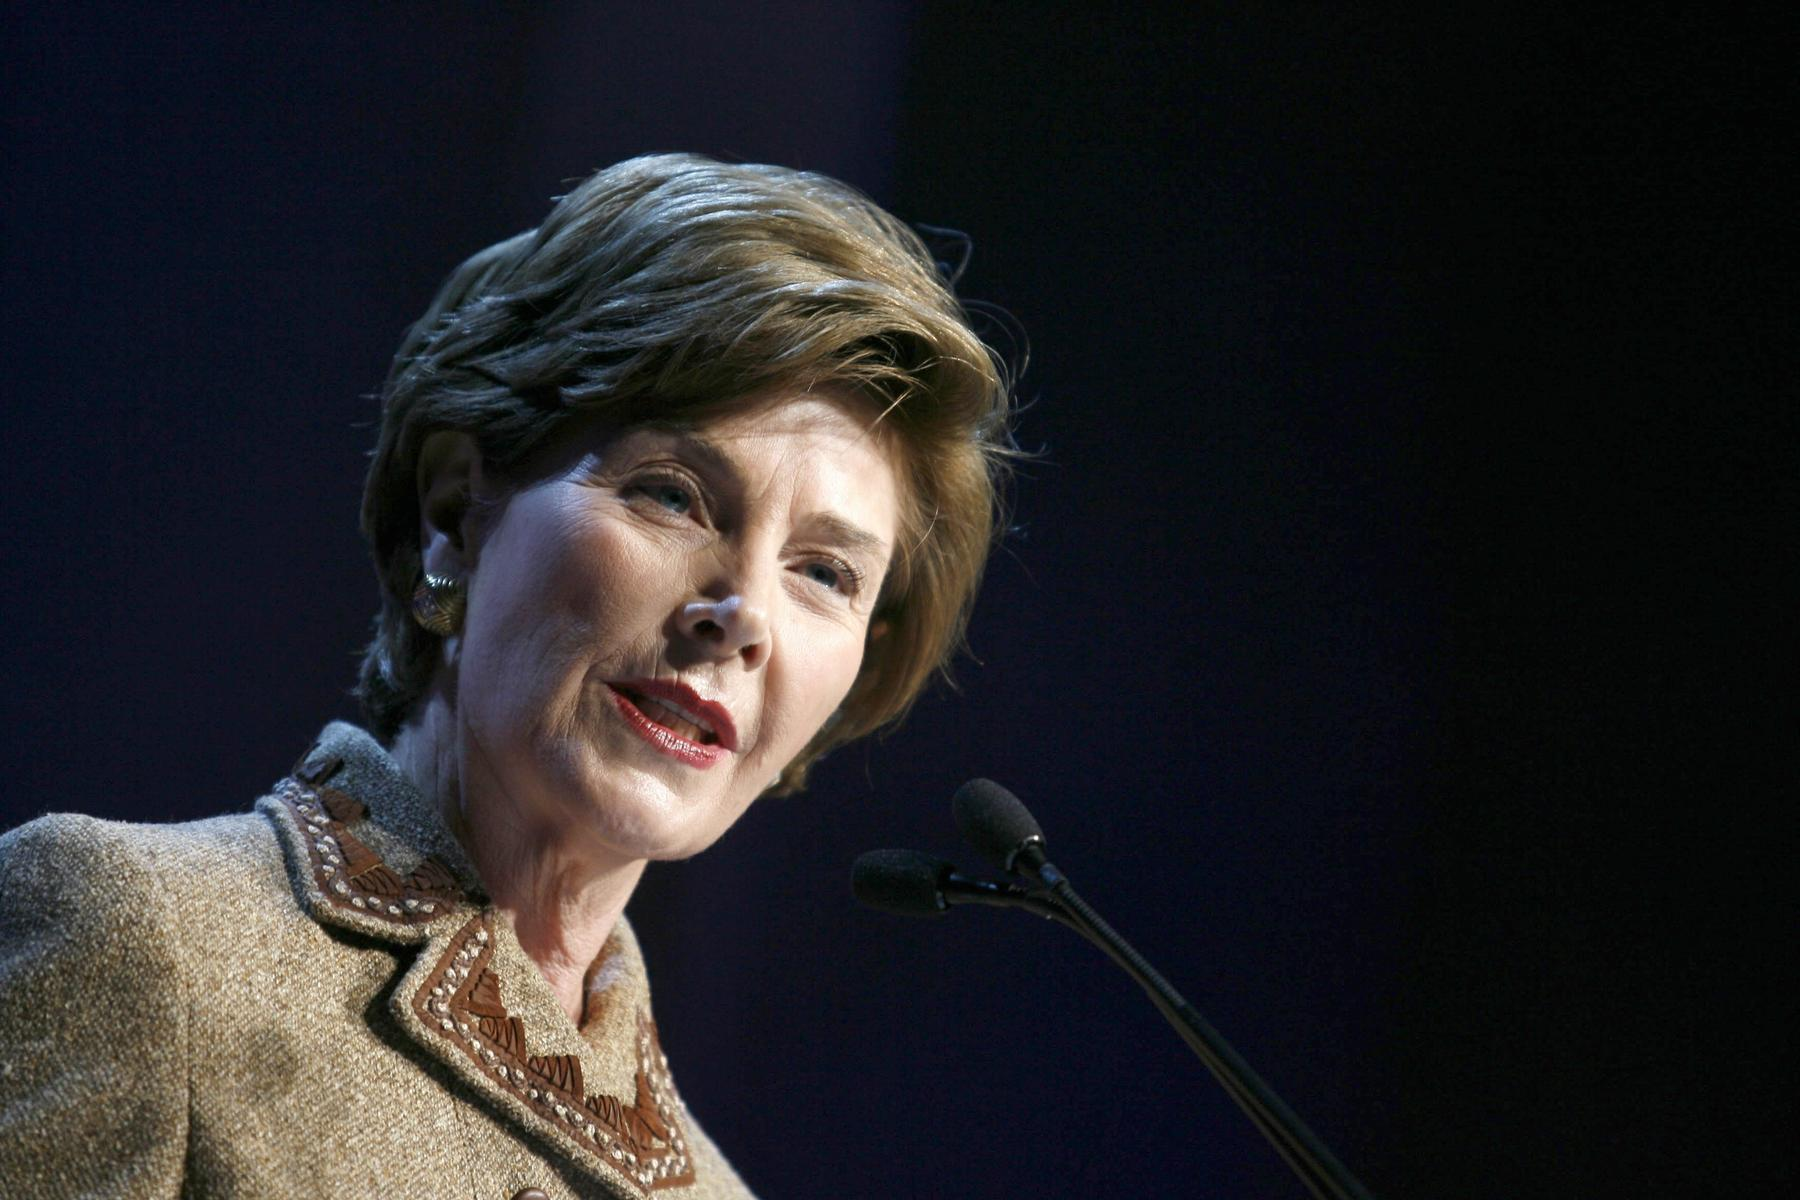 Laura Bush Breaks 3-Year Silence on Trump to Condemn the 'Cruel, Immoral' Treatment of Migrant Children